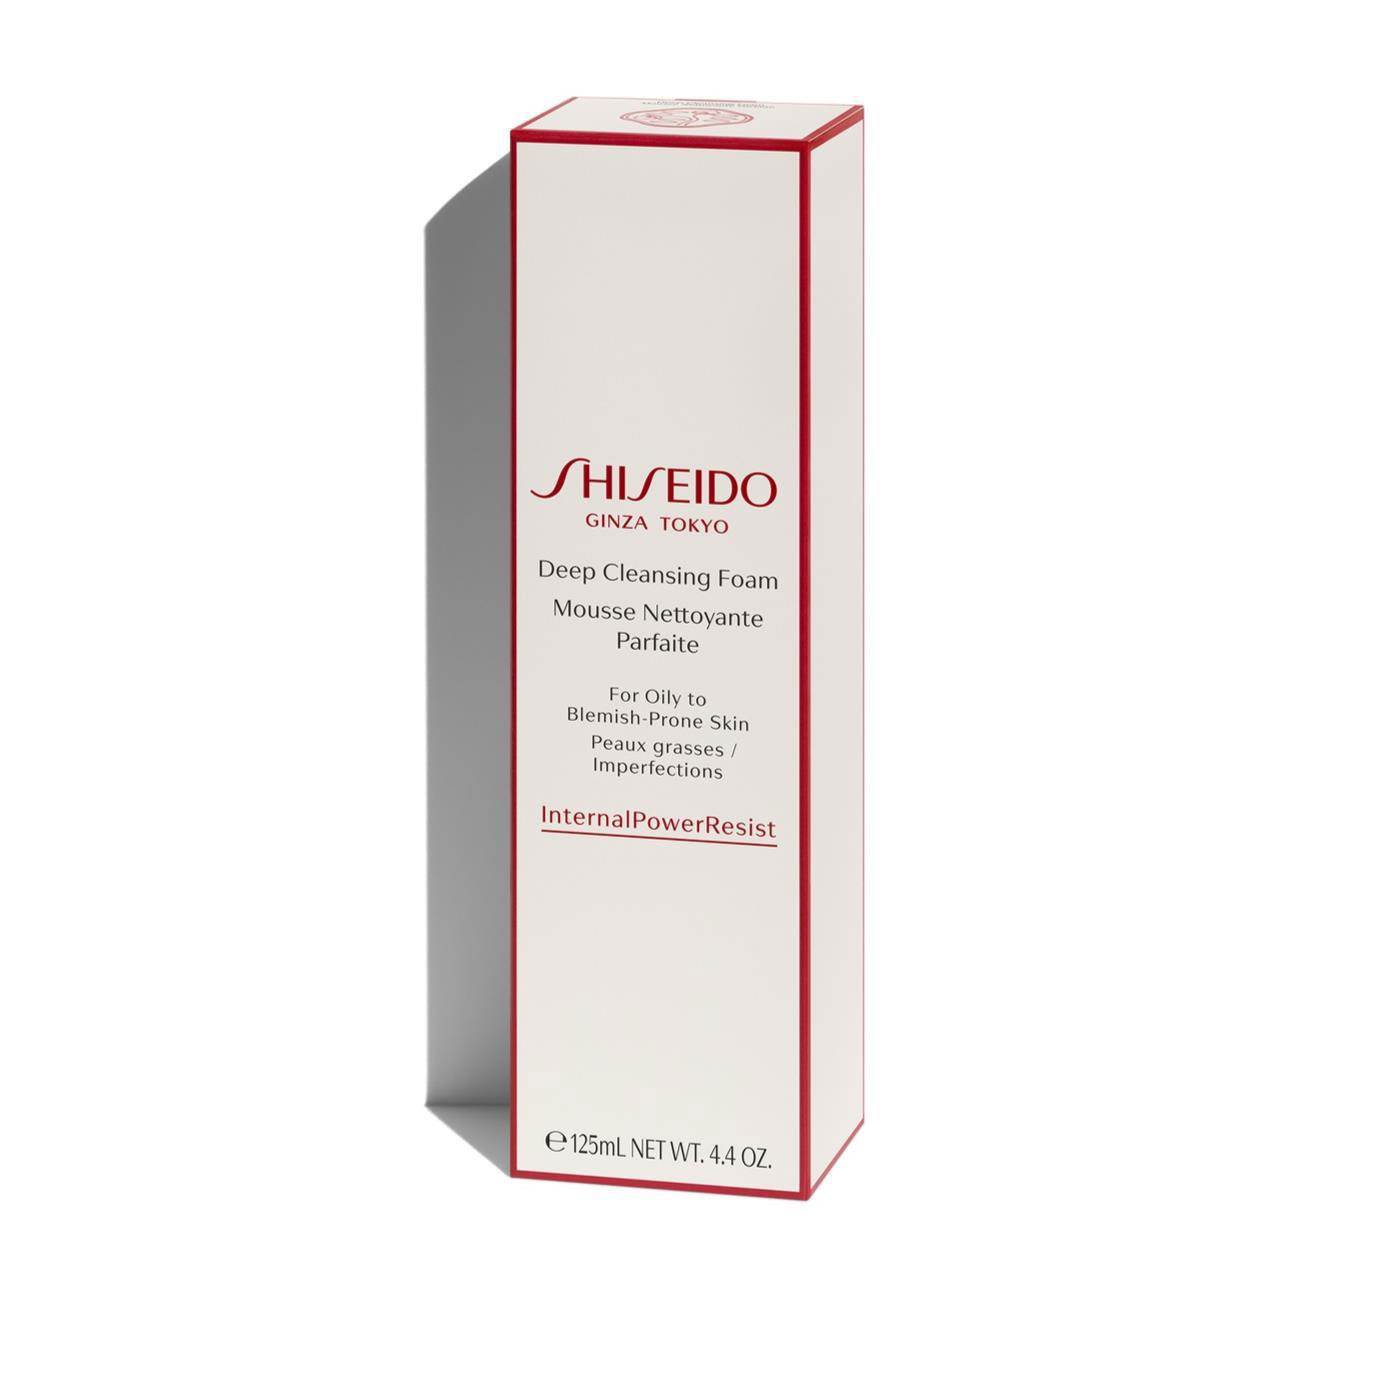 Shiseido Deep Cleansing Foam